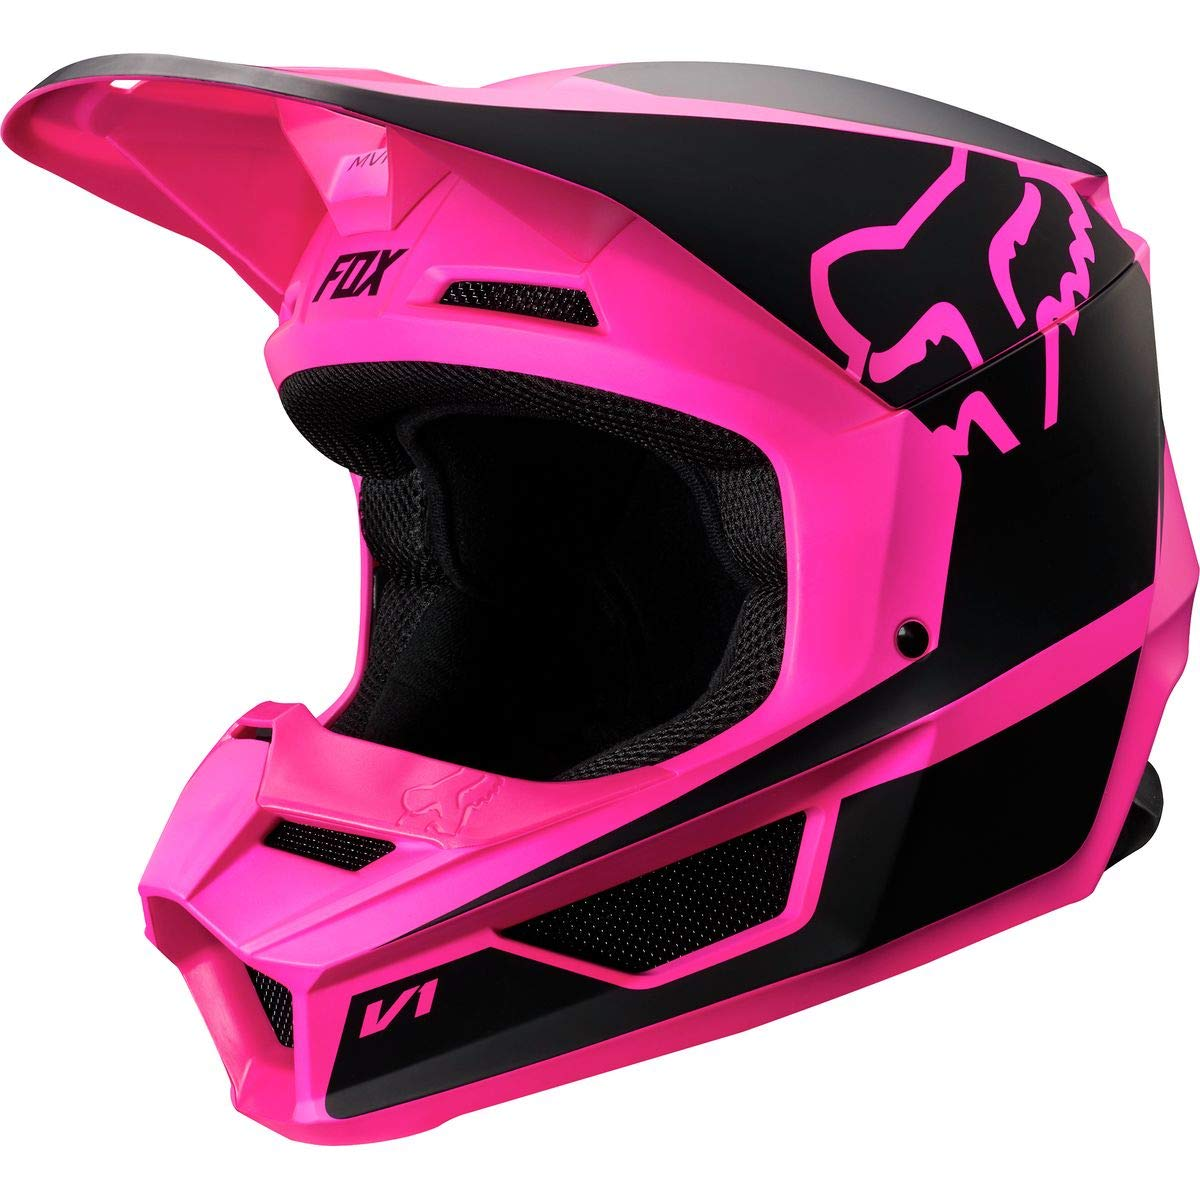 Fox Racing 2019 V1 Helmet - Przm (X-Small) (Black/Pink) by Fox Racing